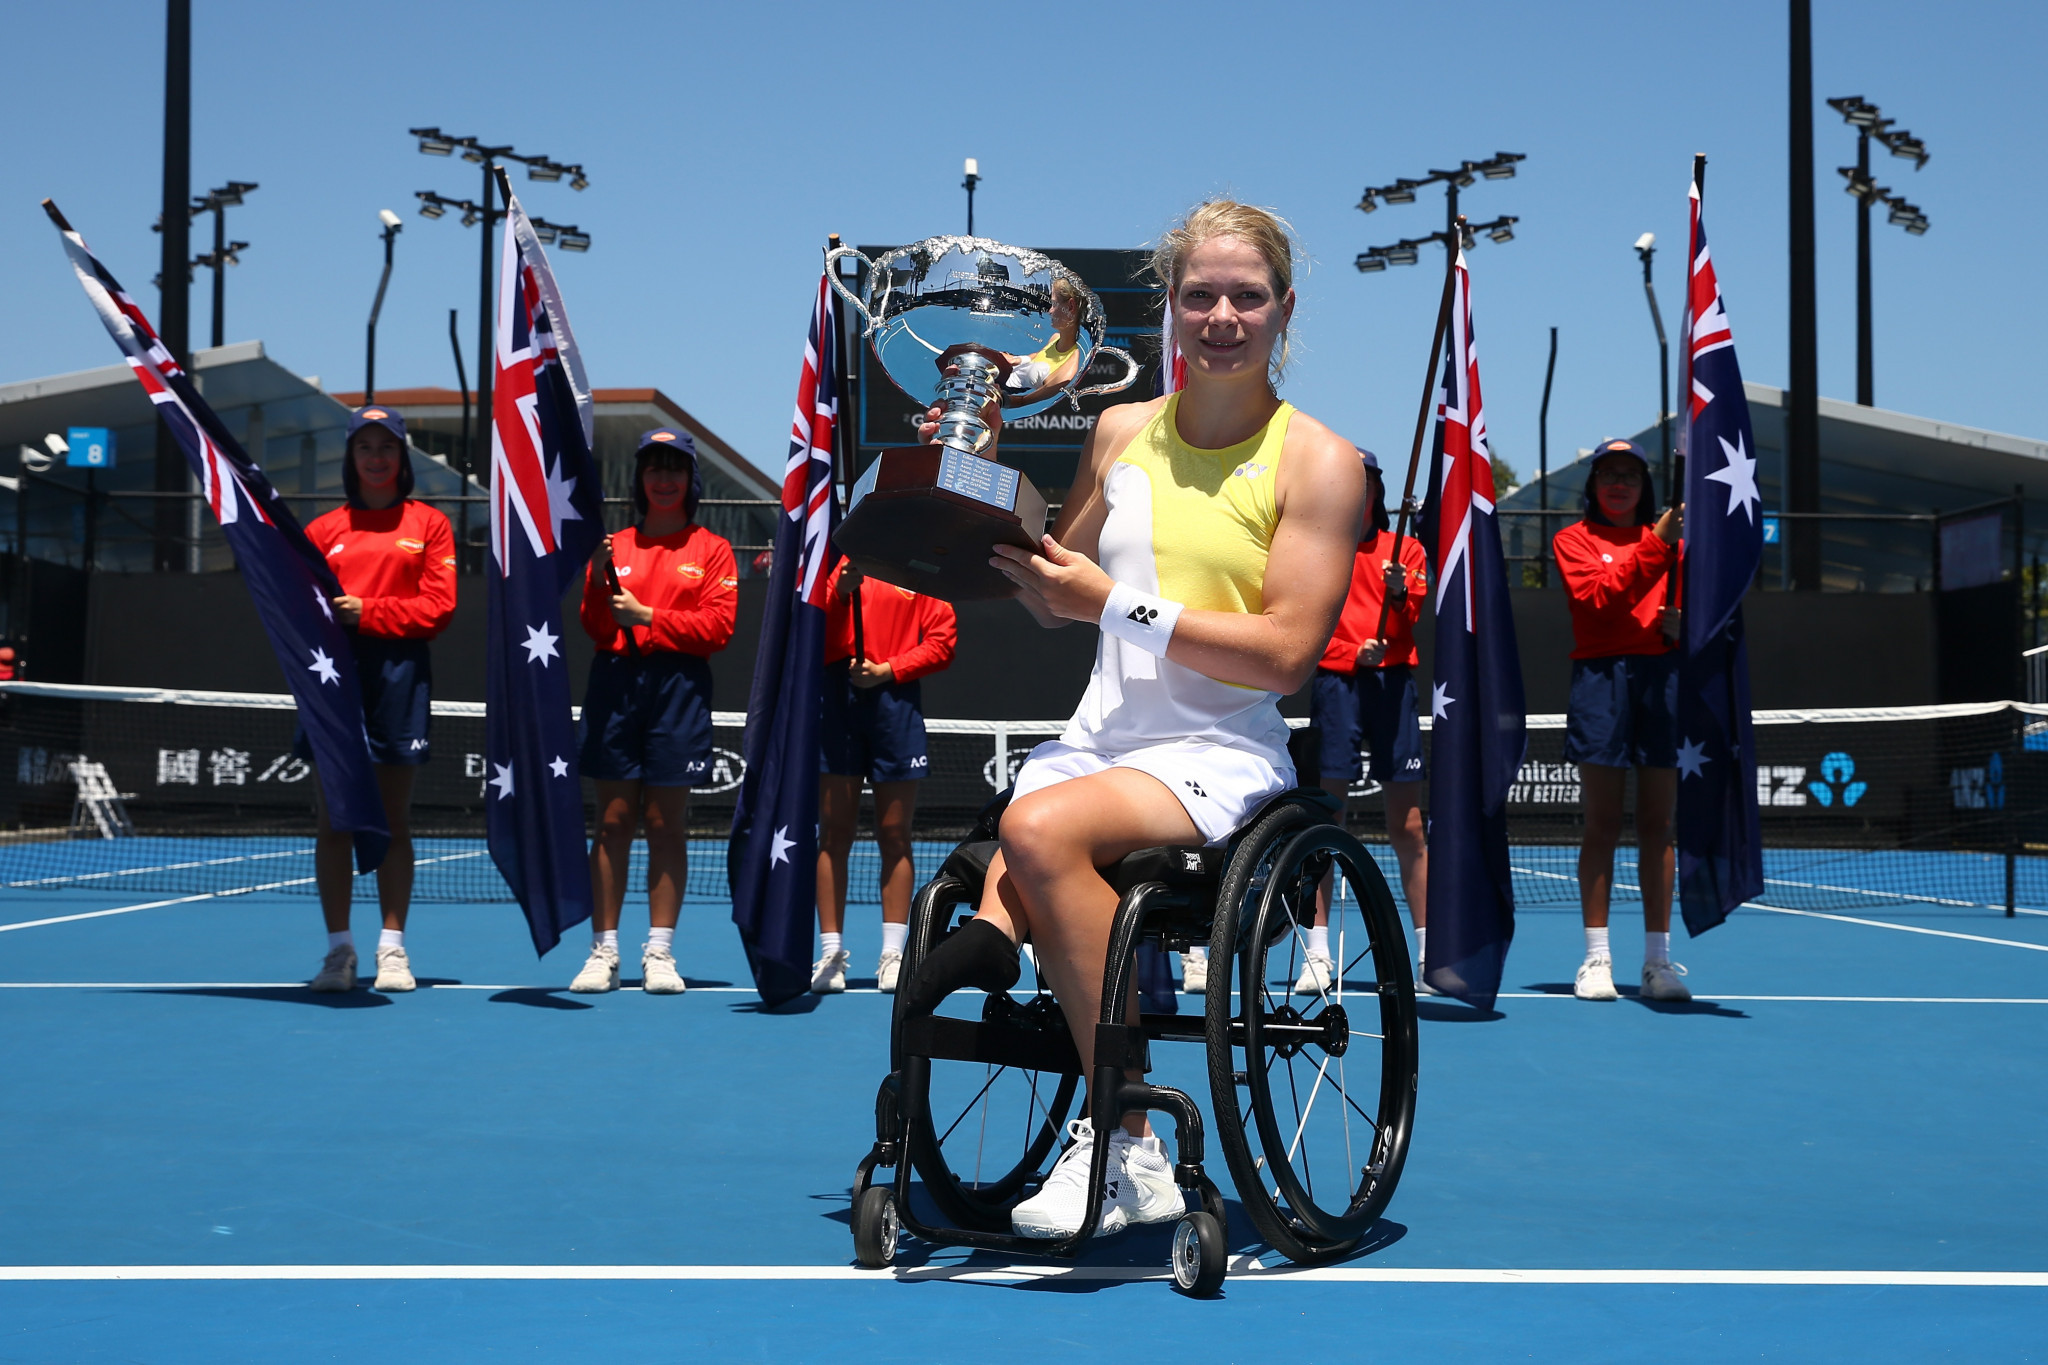 De Groot continues dominance of women's wheelchair tennis with singles and doubles victories at Australian Open